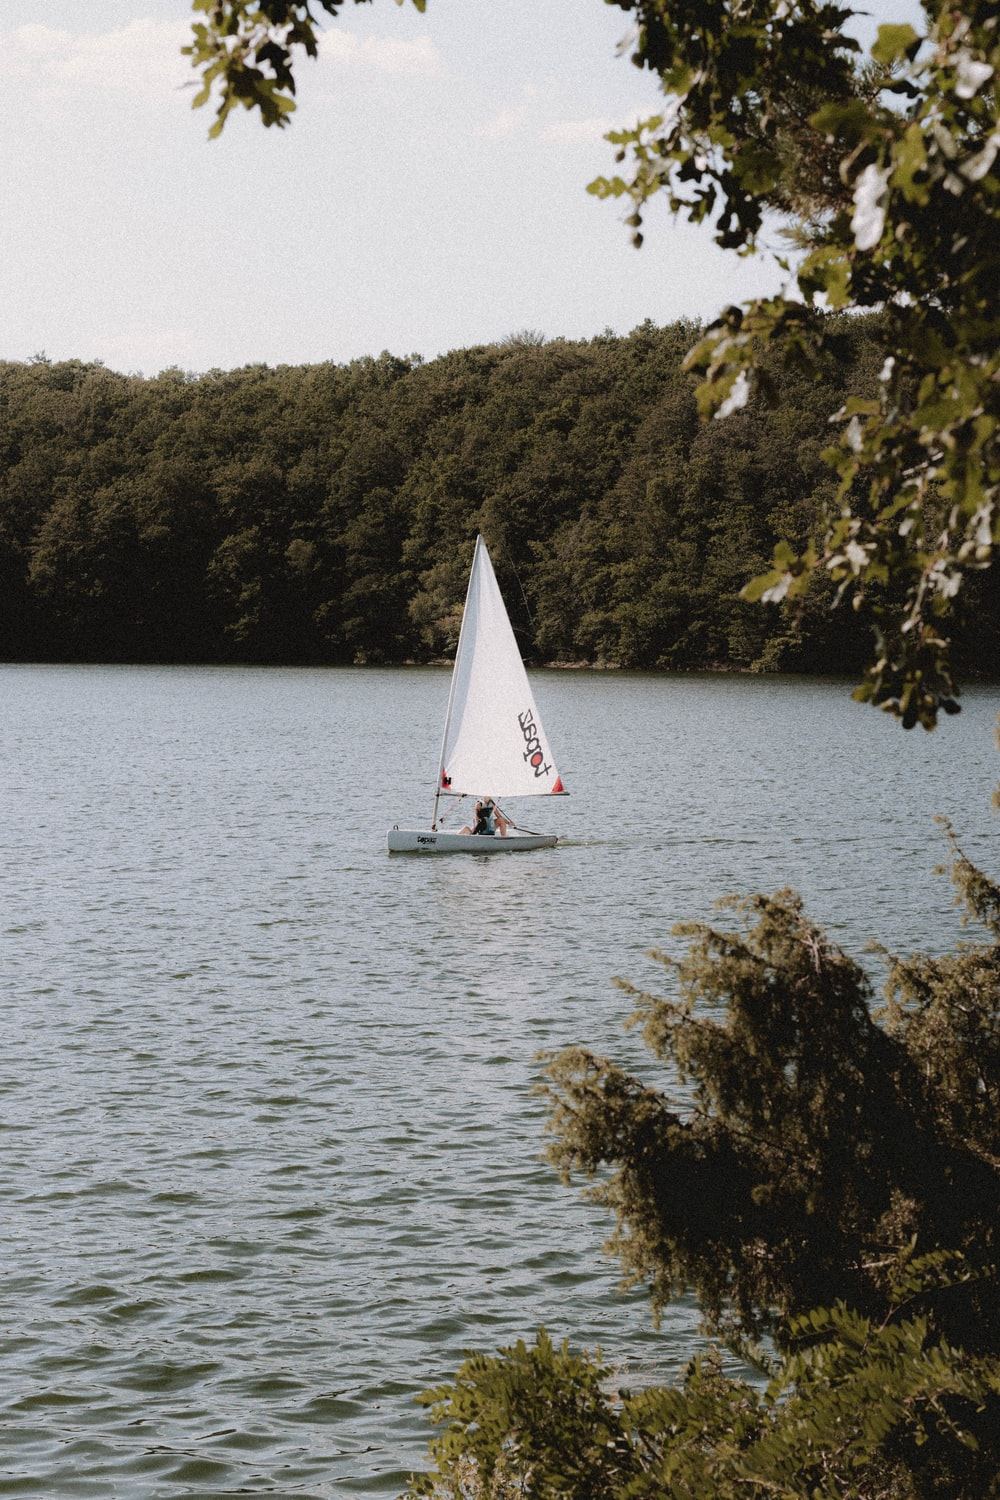 white sailboat on body of water during daytime